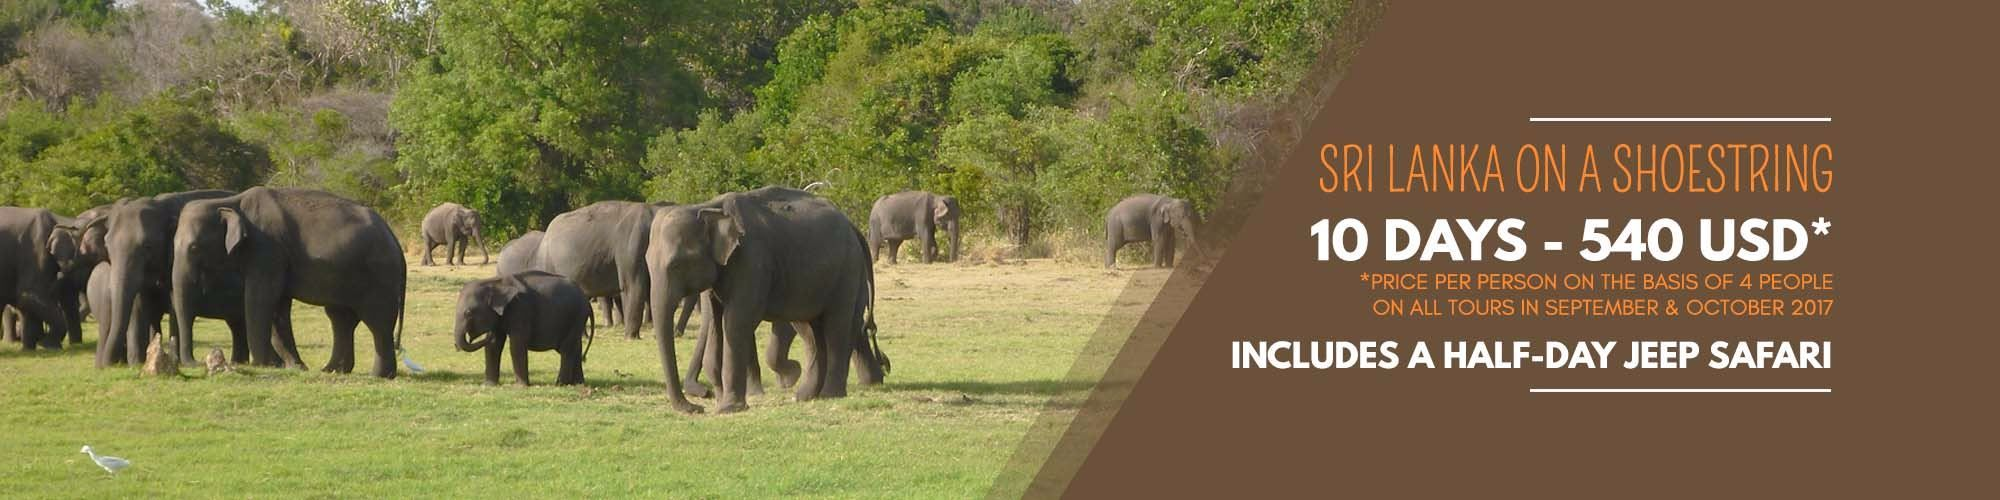 Deal tour packages in Sri Lanka